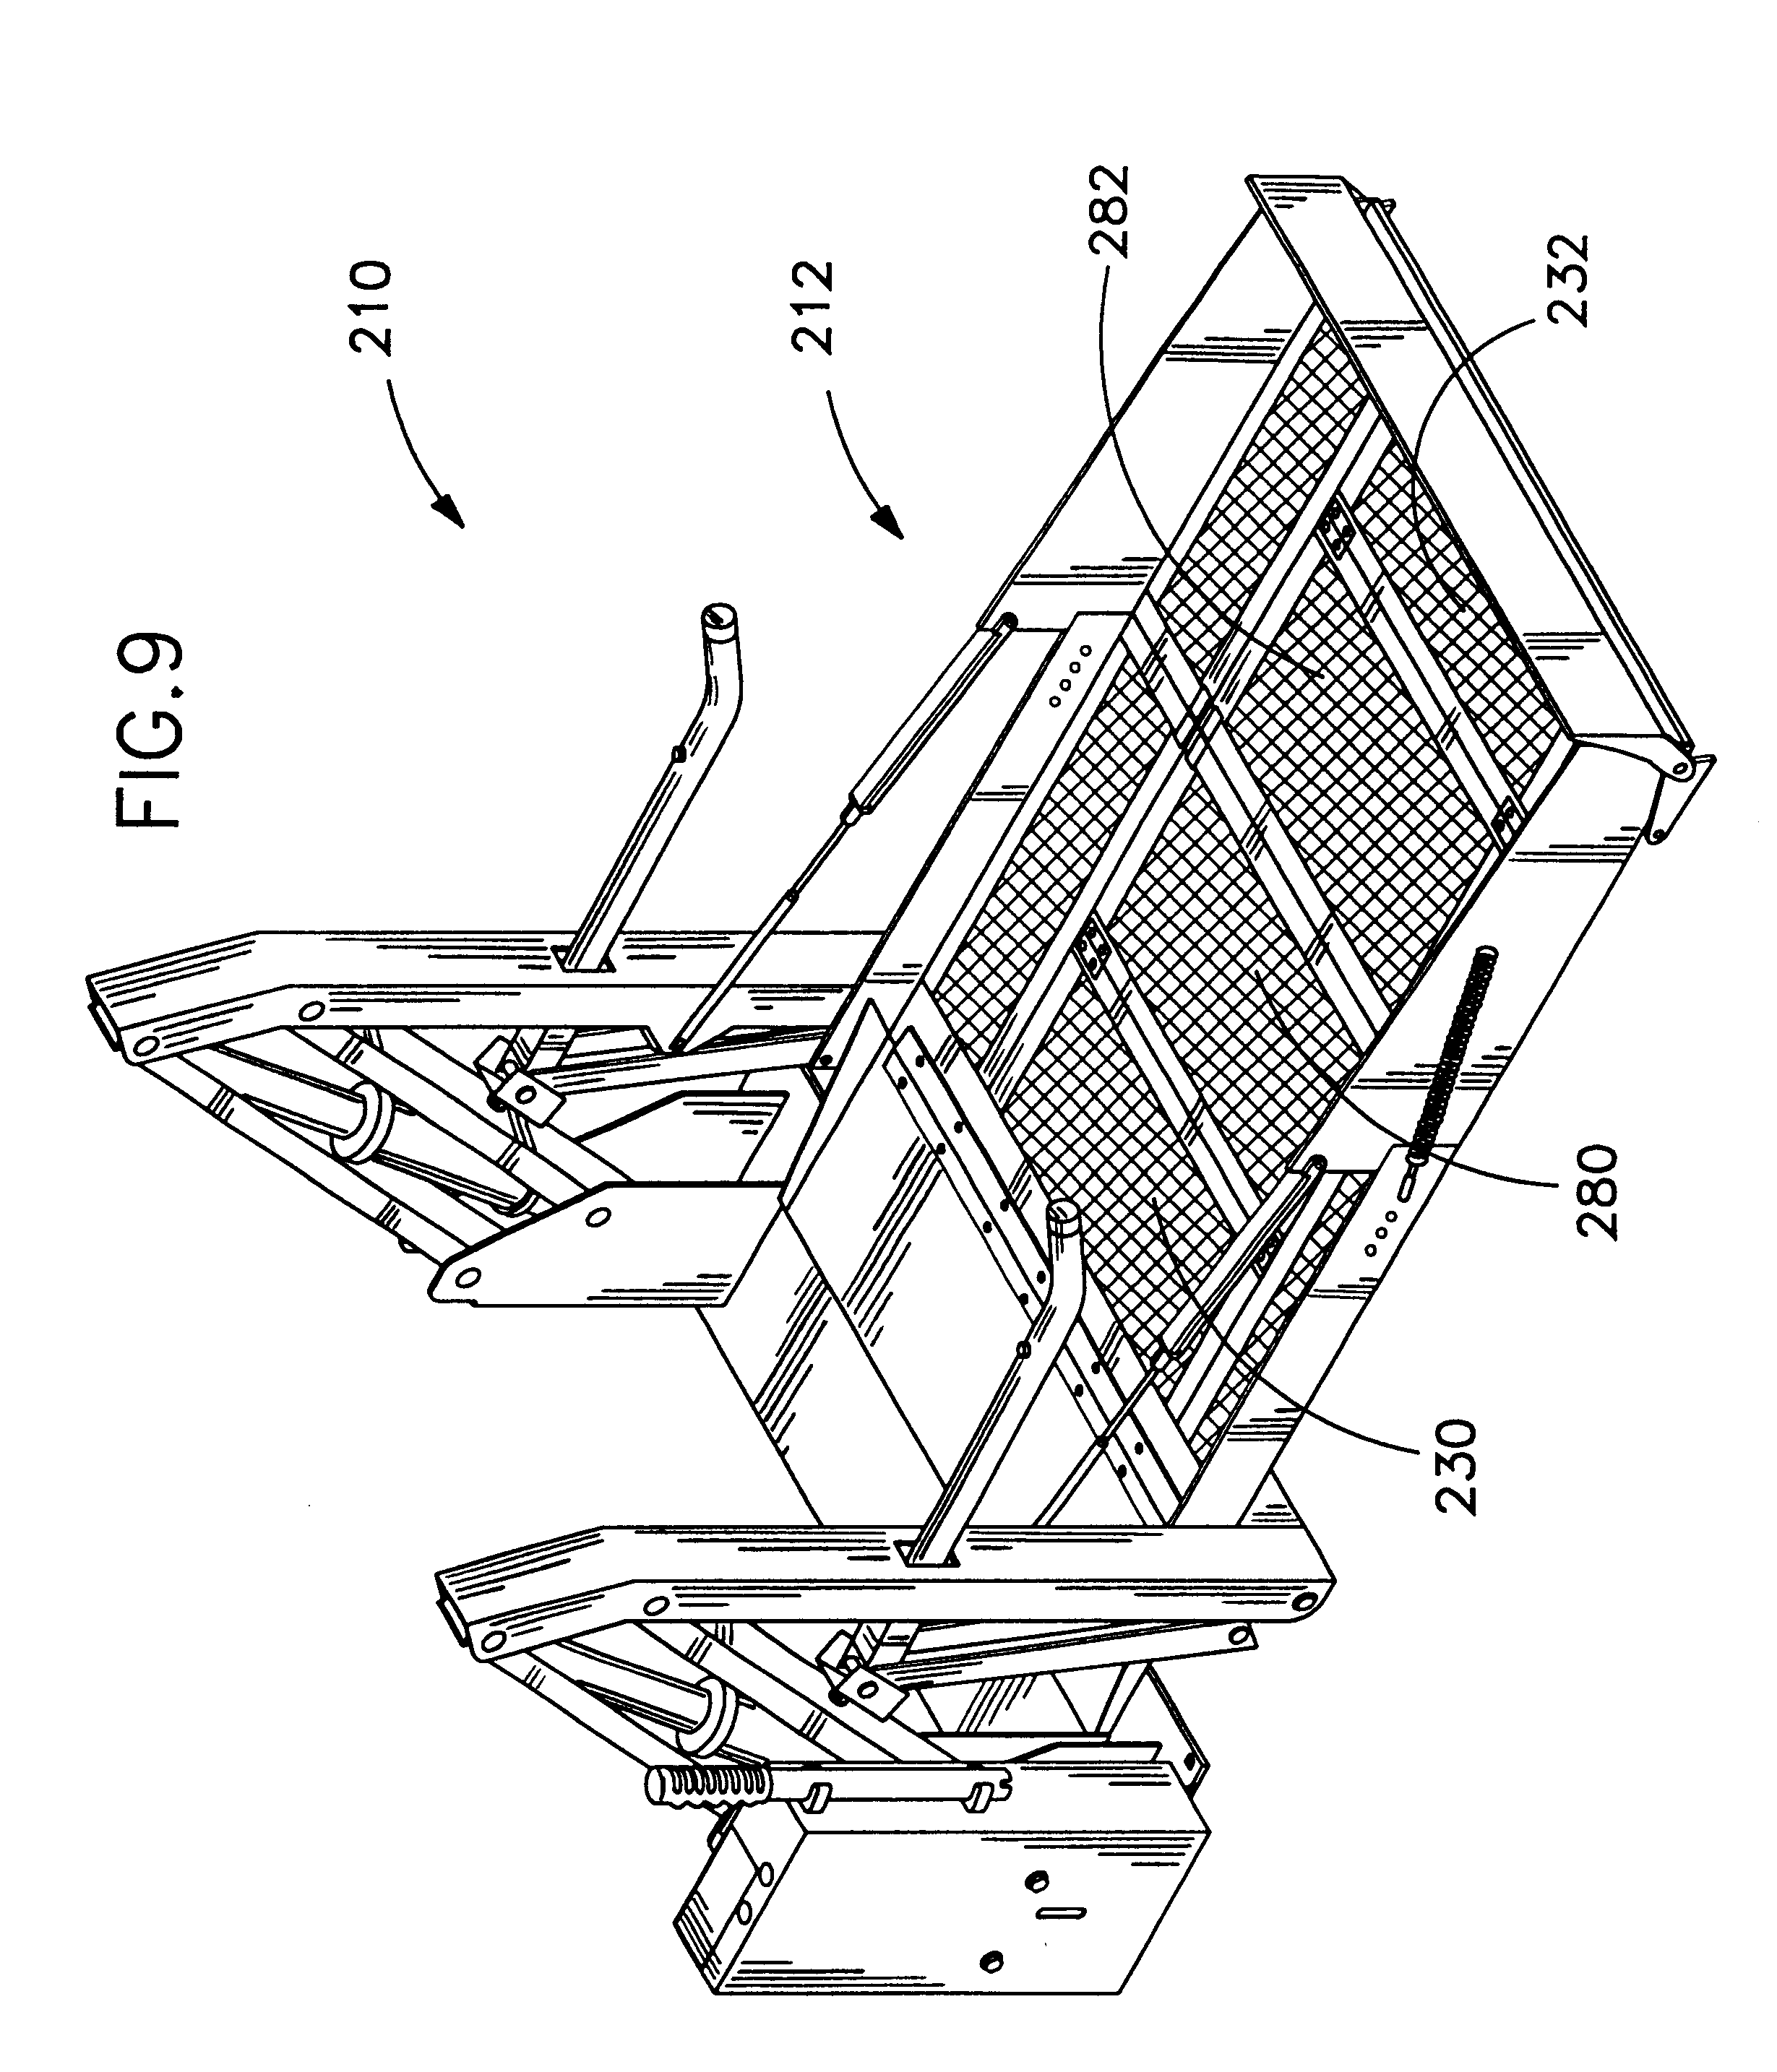 Patent US Wheelchair Lift With Foldable Platform Google - Biome map of the us drawing